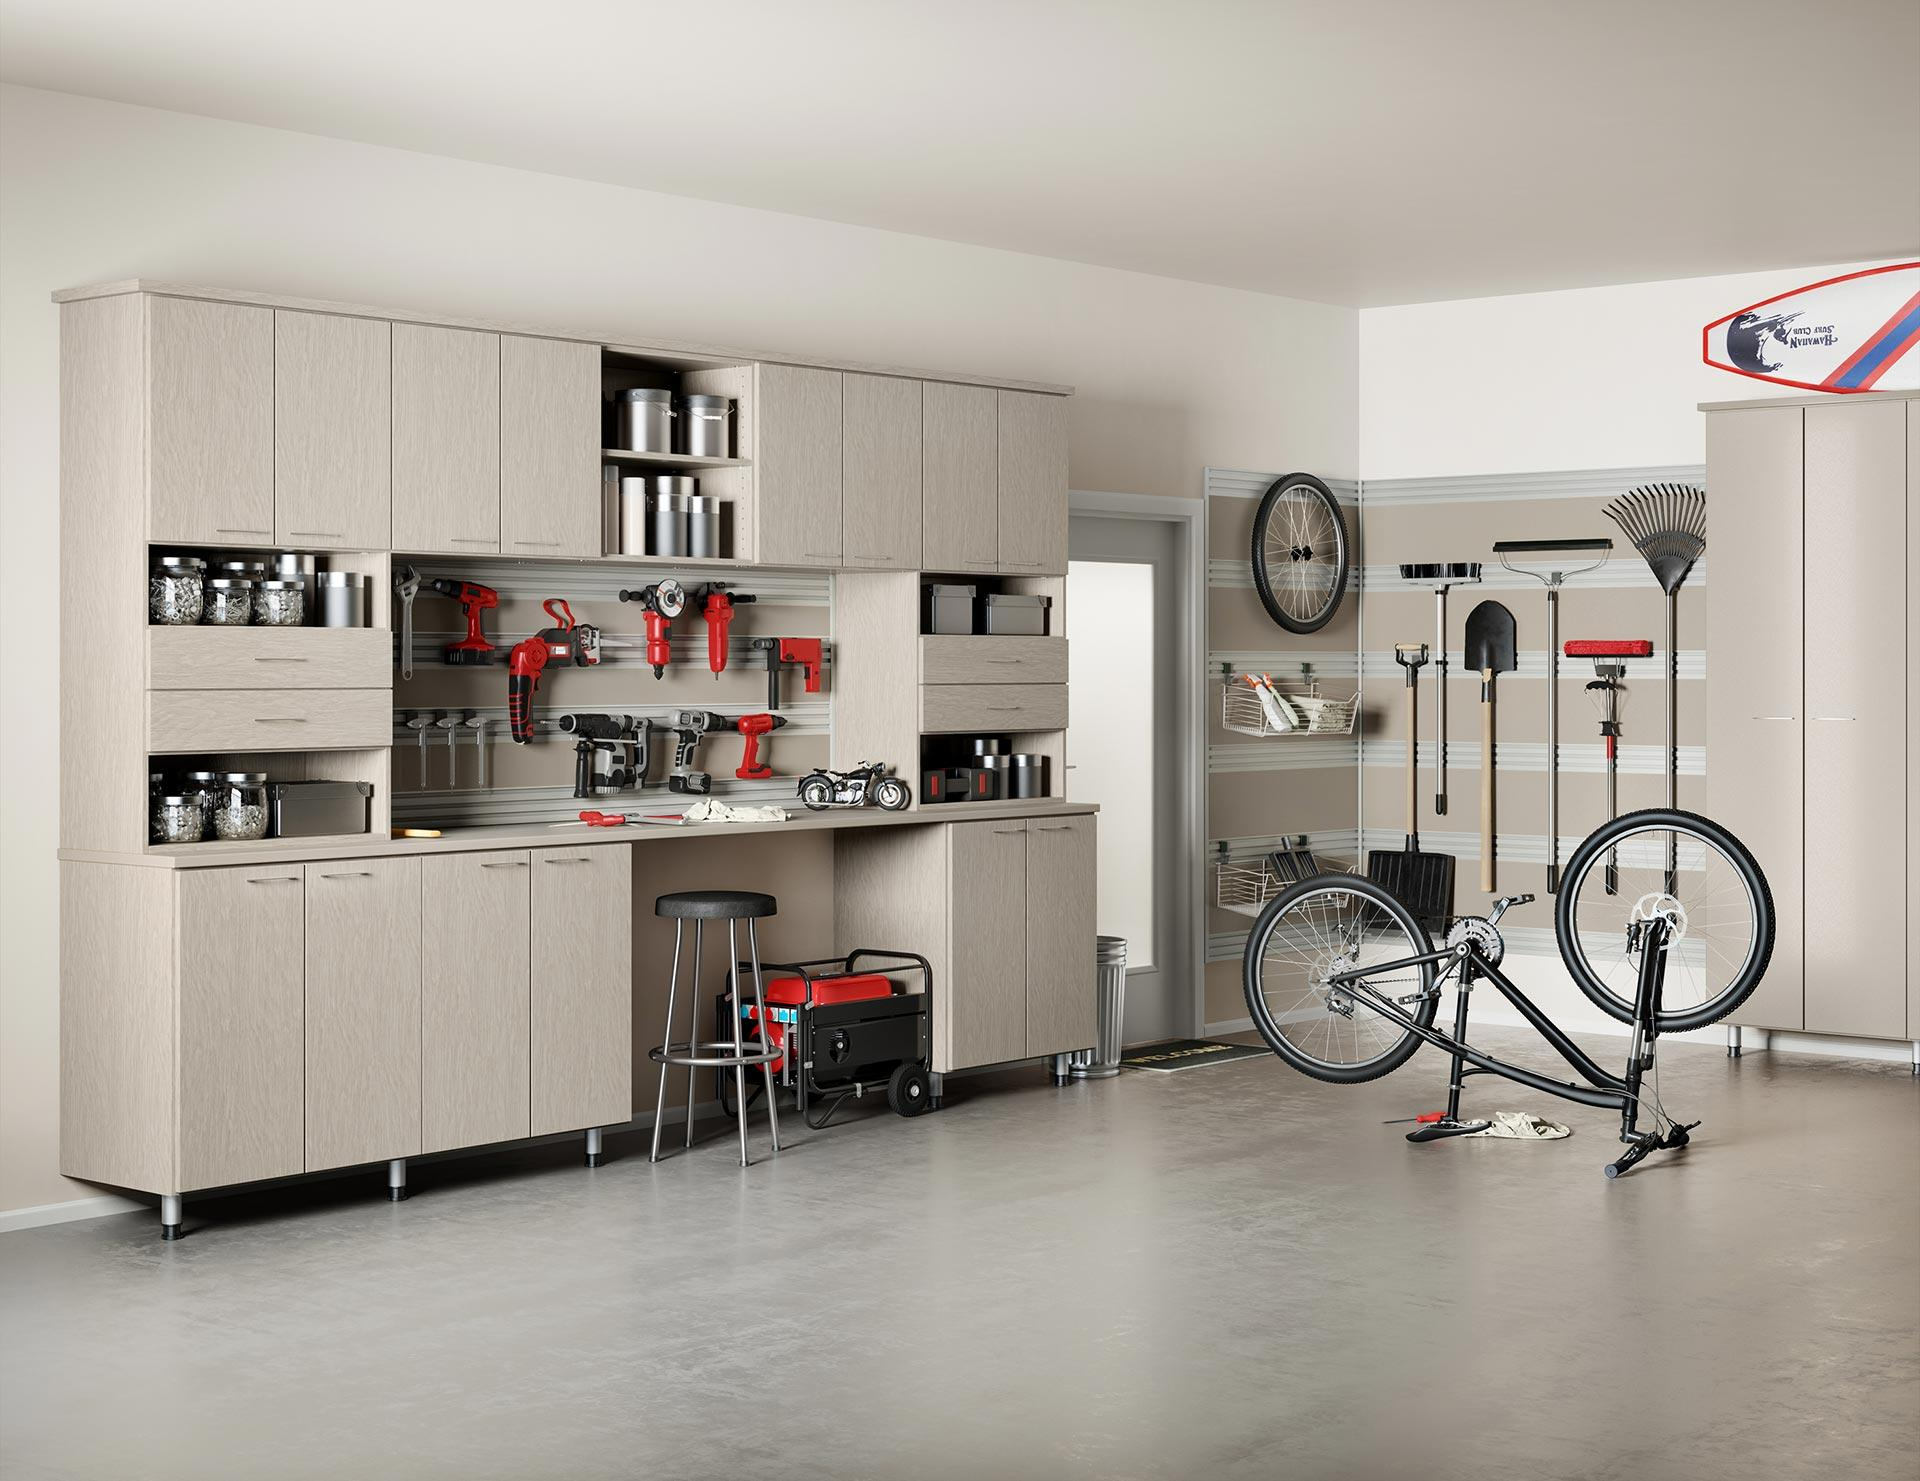 Garage Storage Cabinets Amp Organization Ideas California